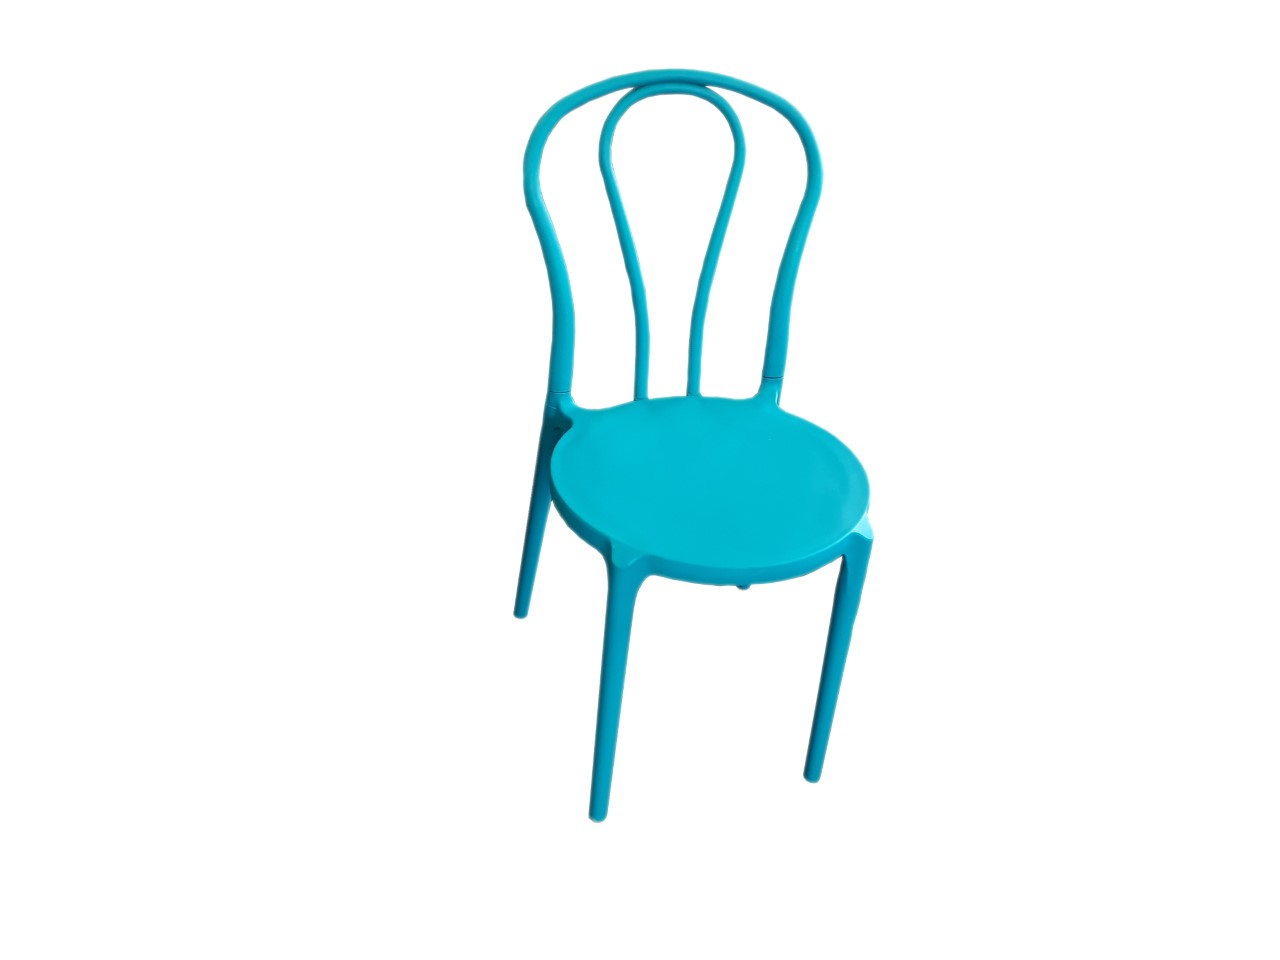 PARKER CHAIRS  .. WINTER CLEARANCE for    $ 55.00ea  ex-warehouse + gst... Colours; Teal & Black